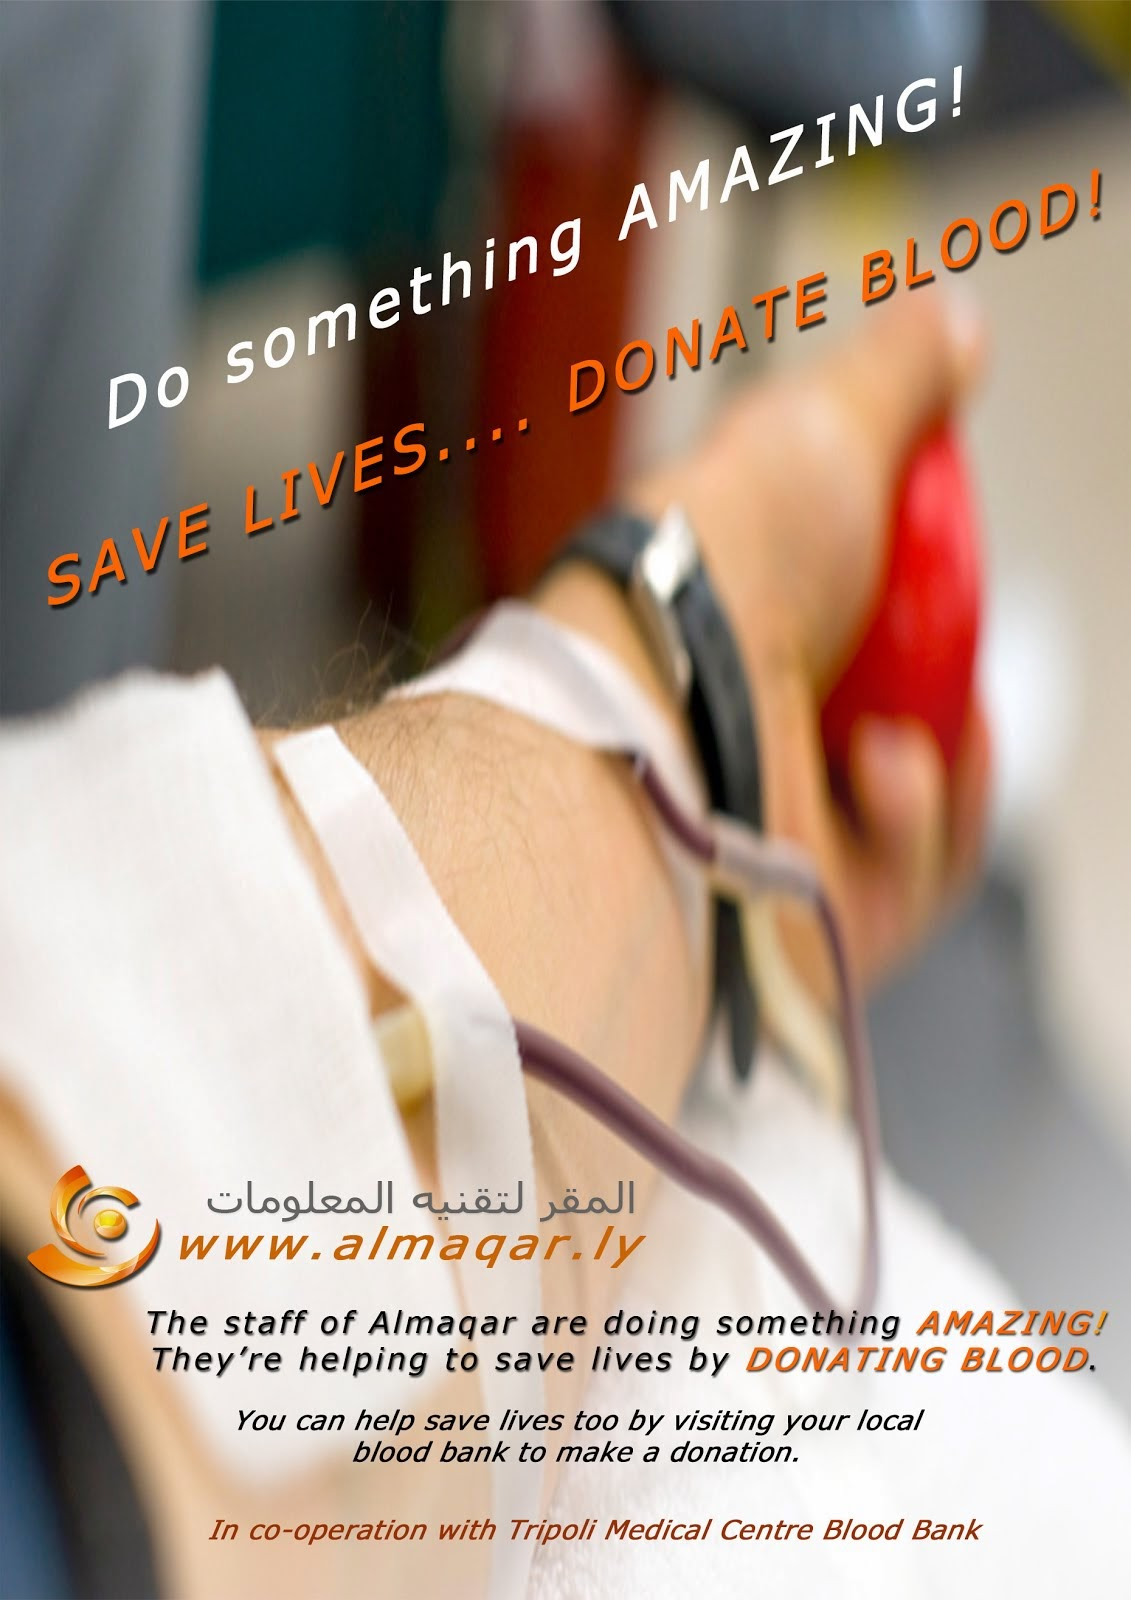 Donate blood! Save lives!